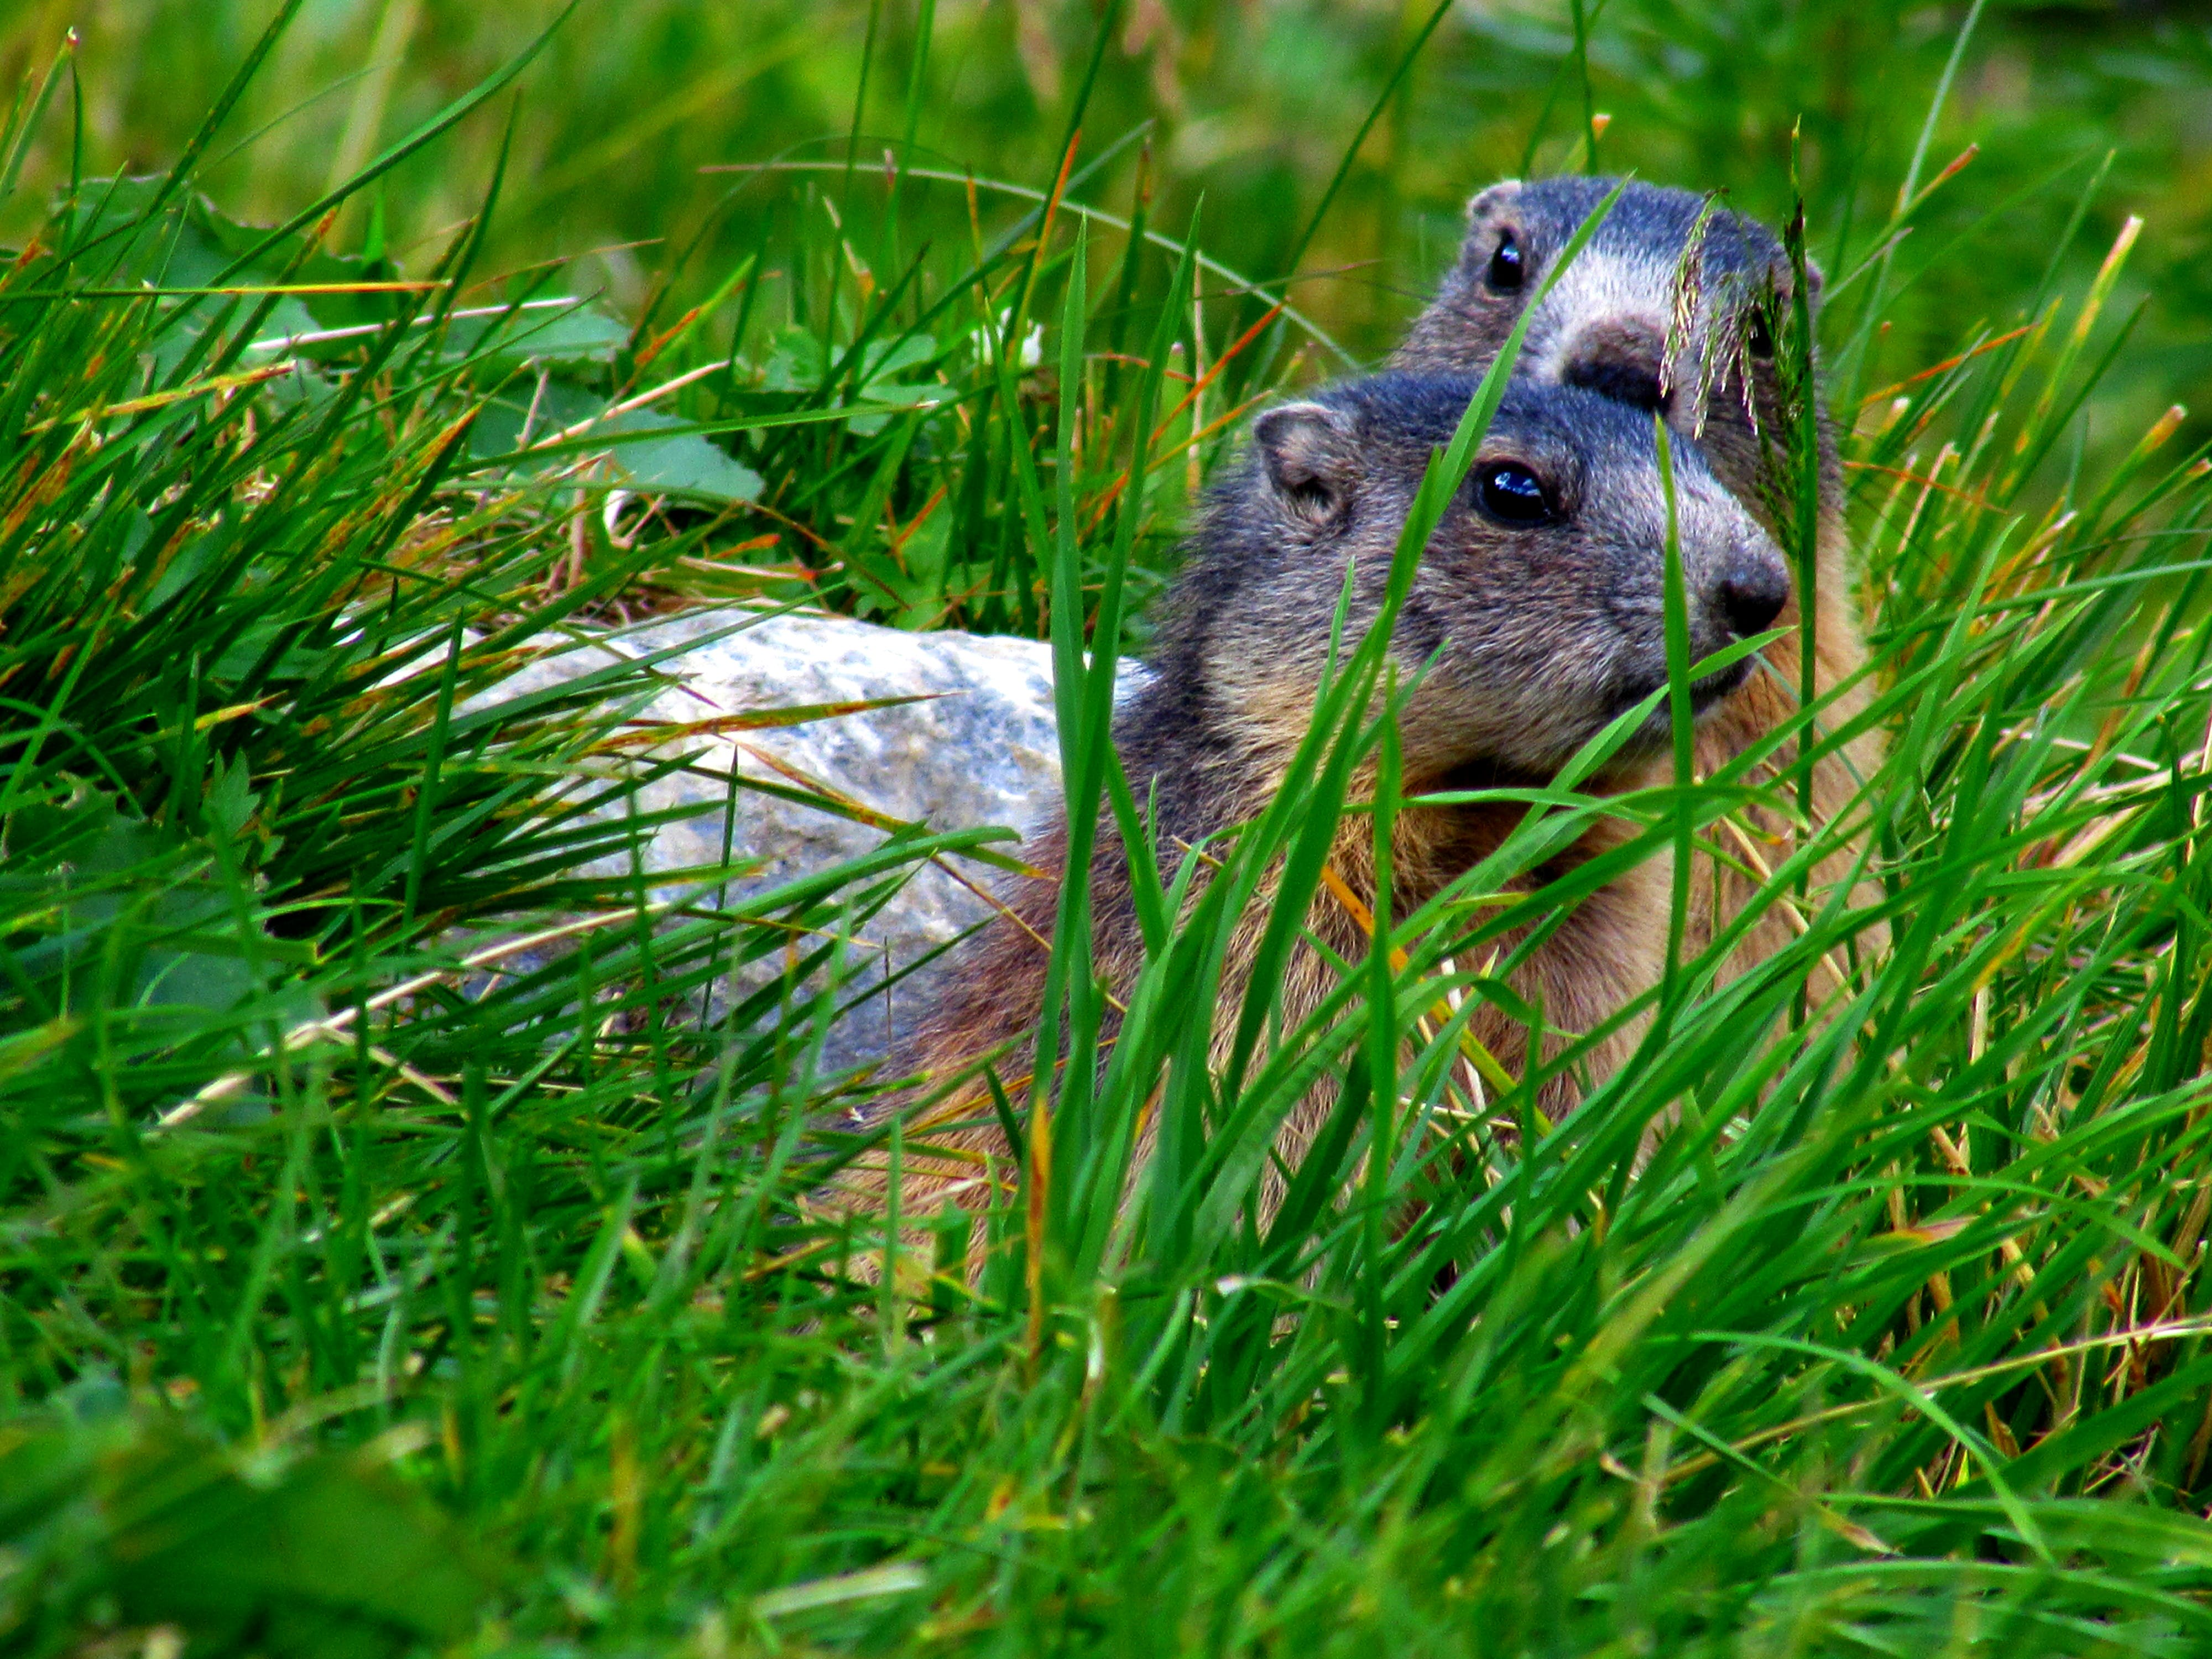 Two Squirrels on Grass Field